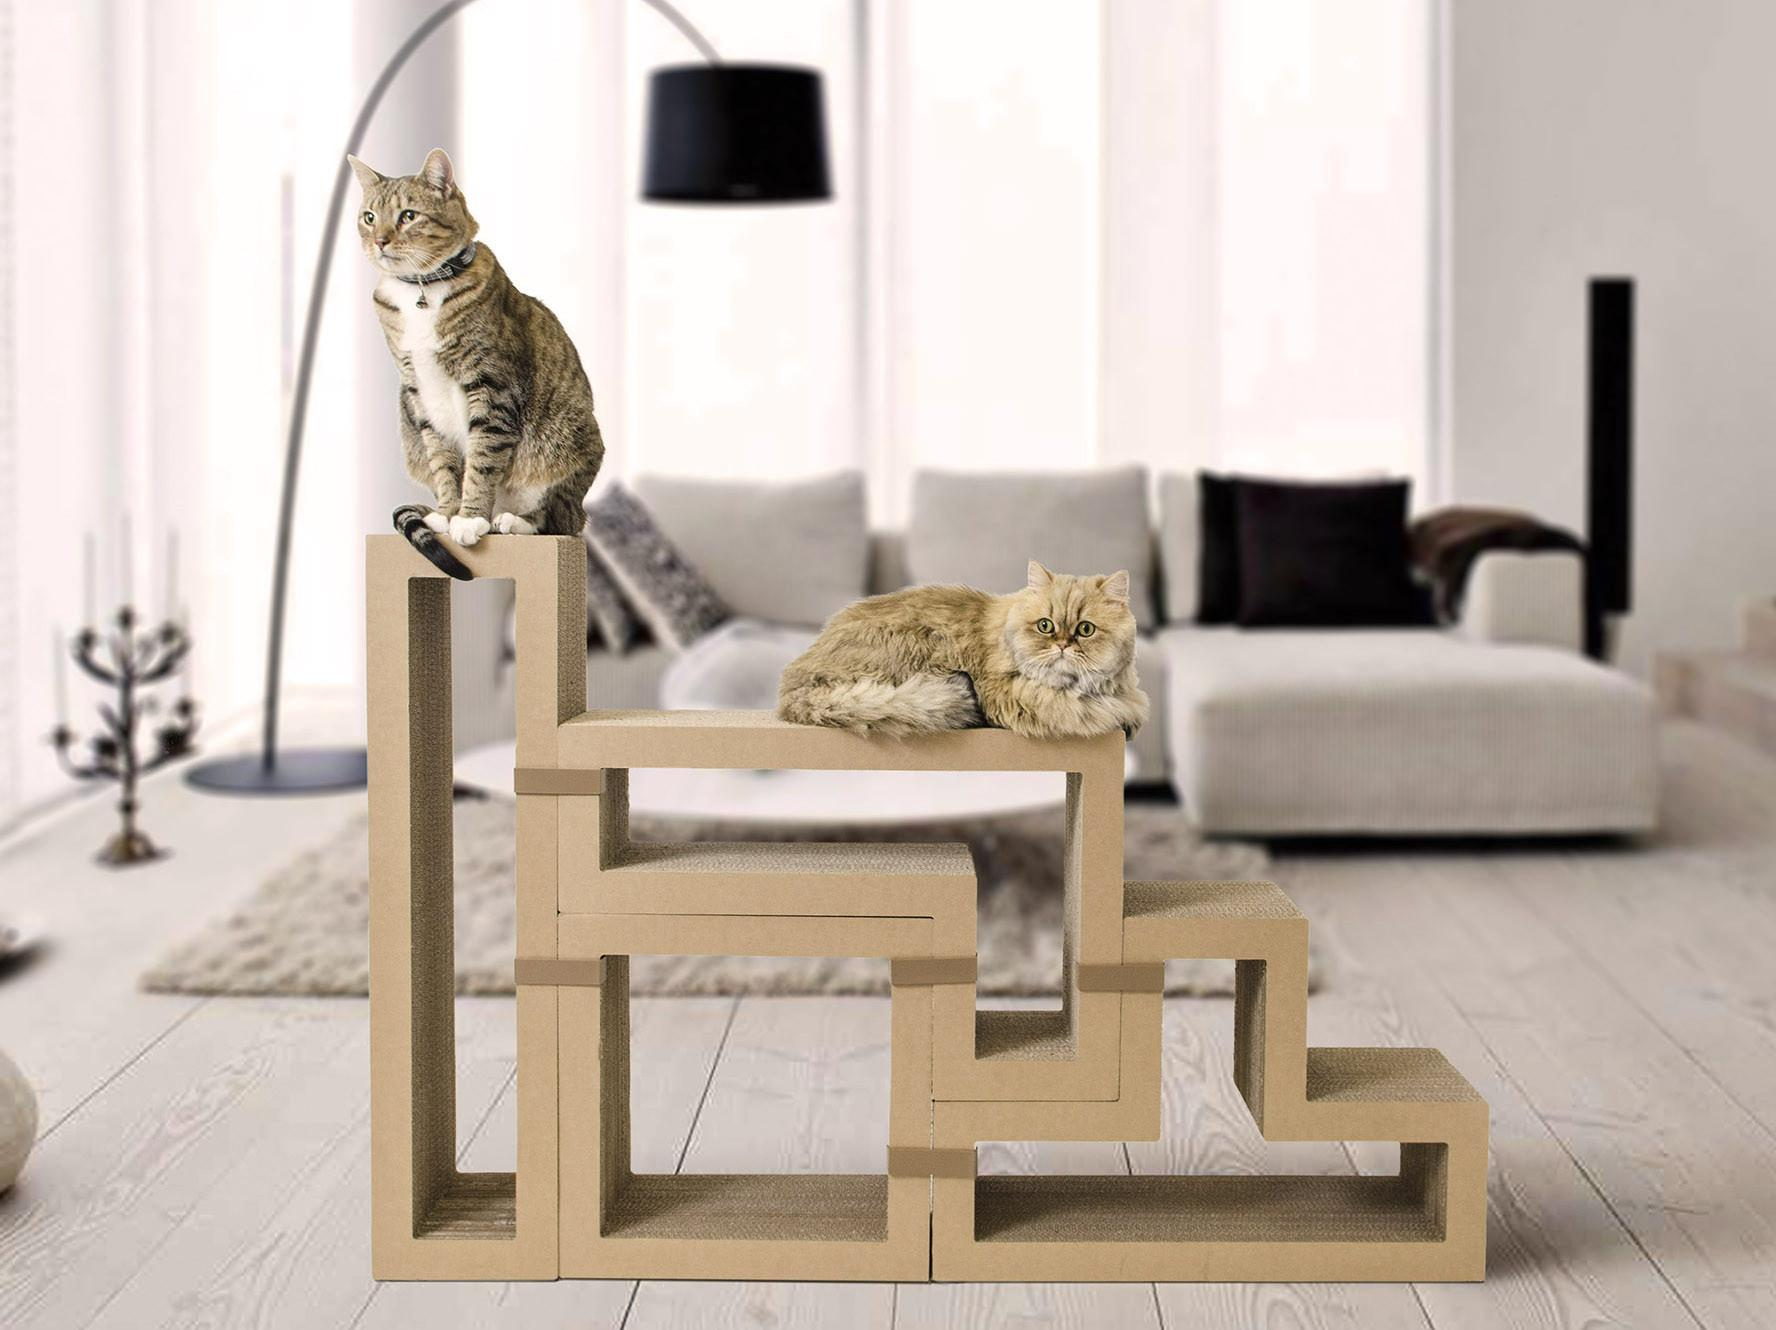 Modular Furniture Works Humans Cats Curbed